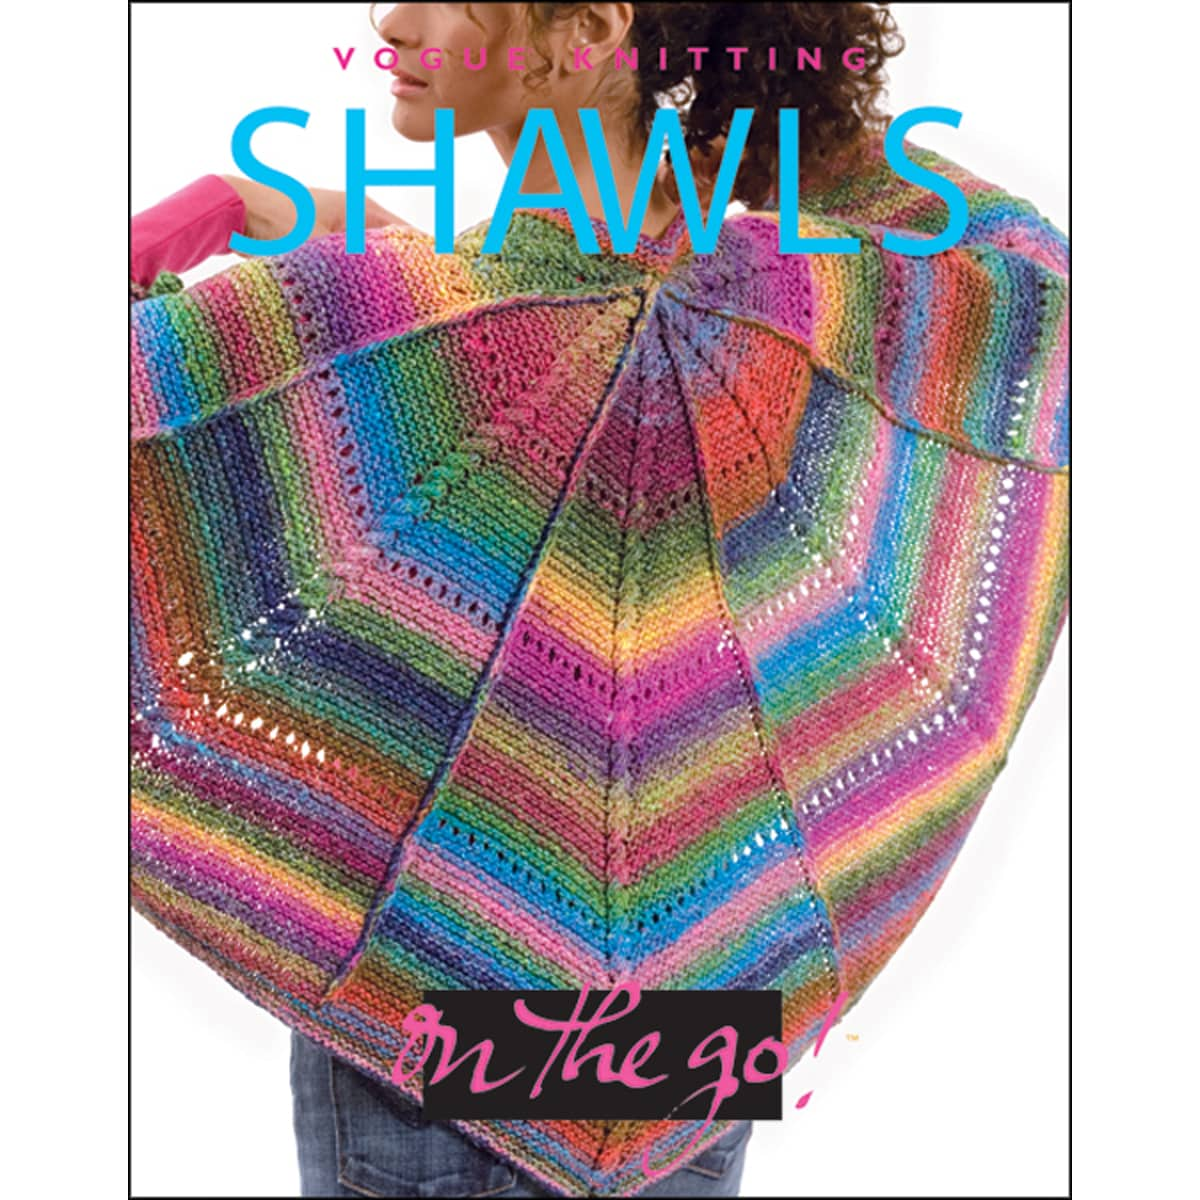 Vogue Books-Vogue Knitting On The Go: Shawls